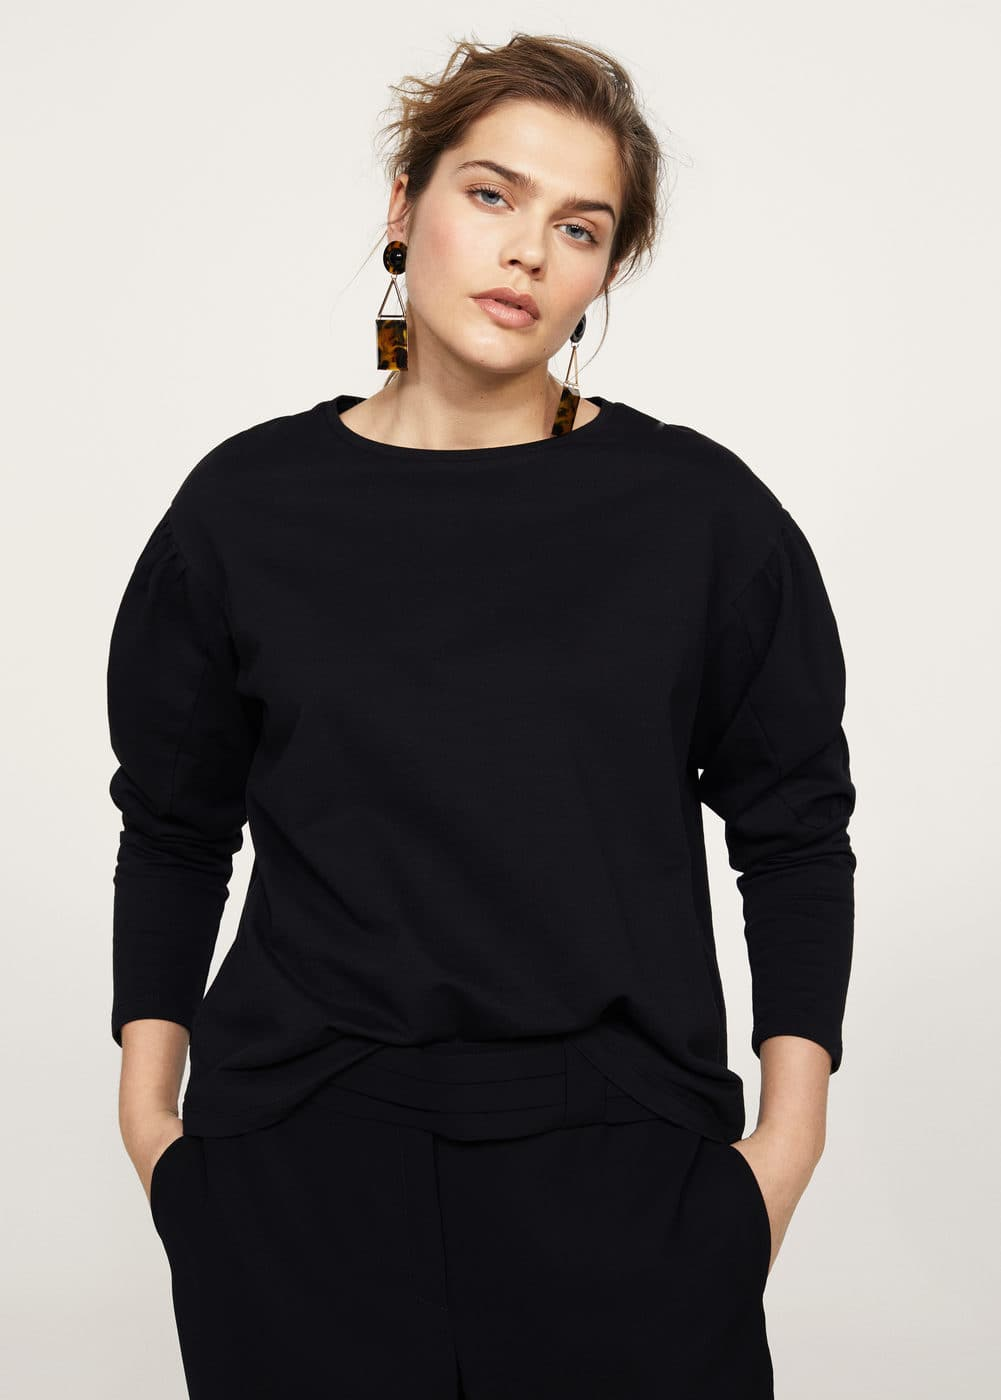 Puffed sleeves sweatshirt | VIOLETA BY MANGO